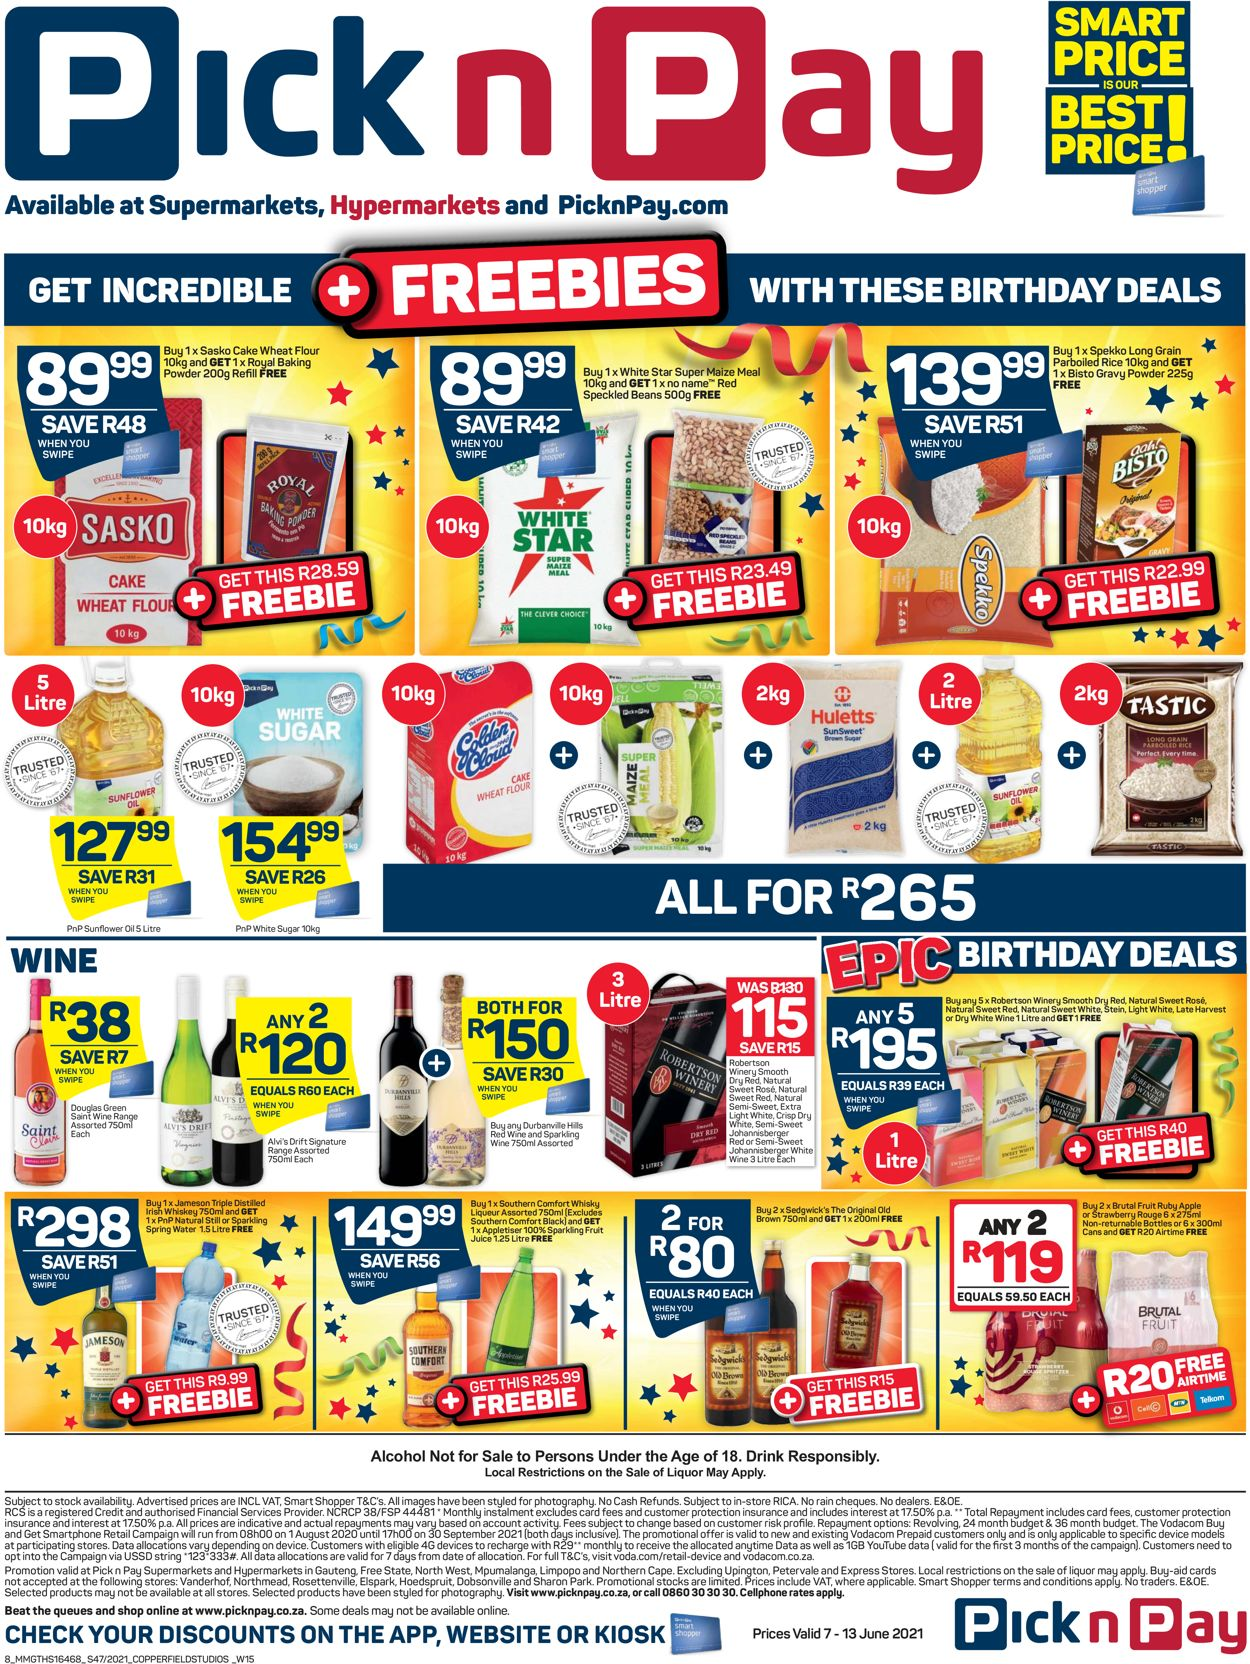 Pick n Pay Catalogue - 2021/06/07-2021/06/13 (Page 8)